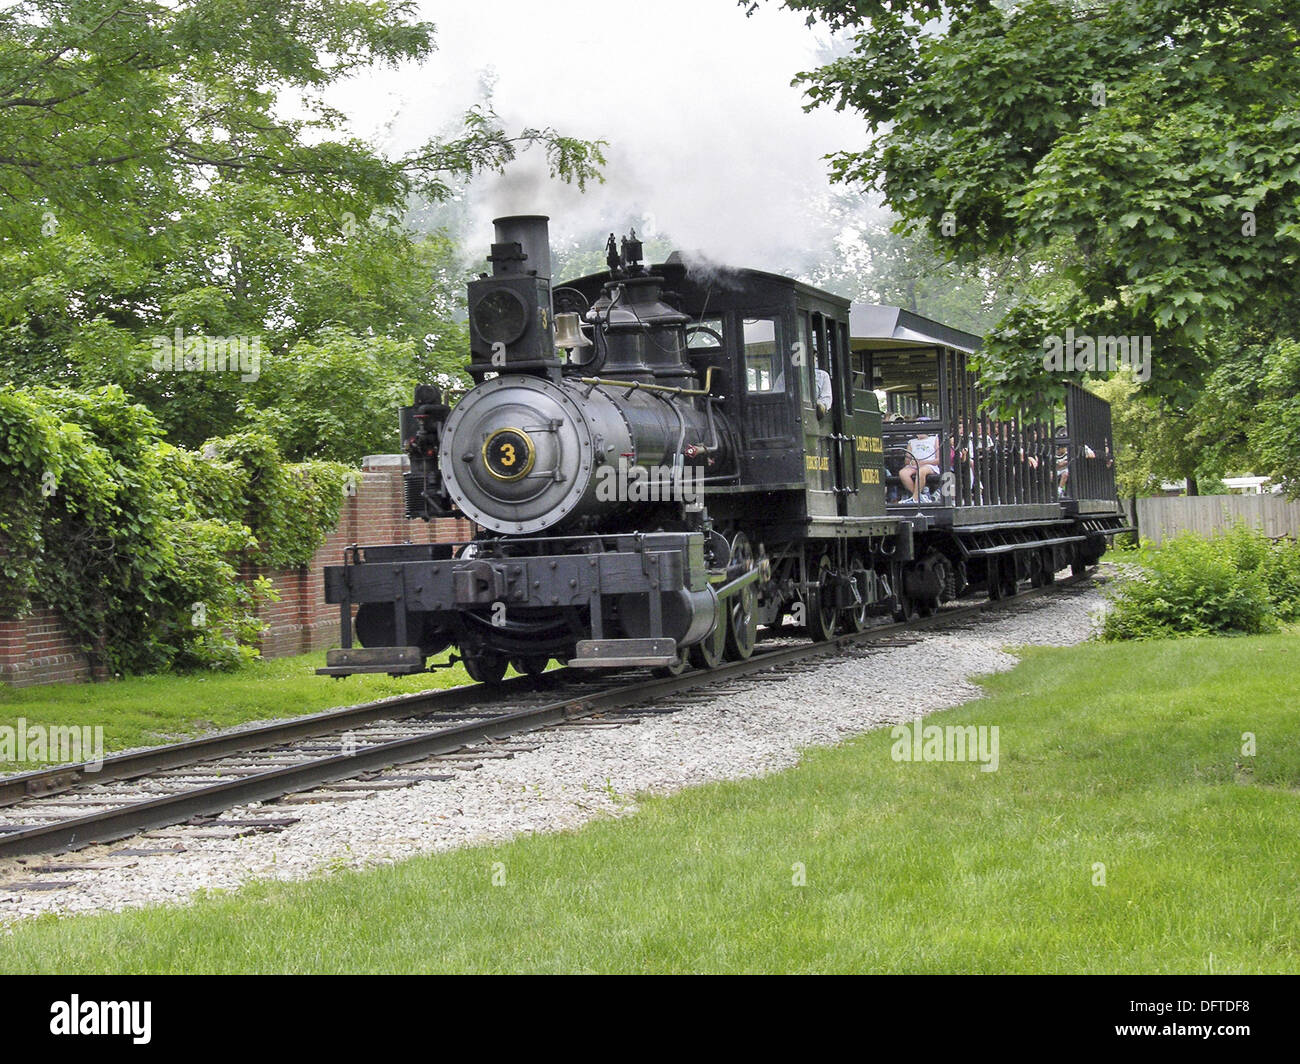 Steam locomotive train at Historic Greenfield Village and Henry